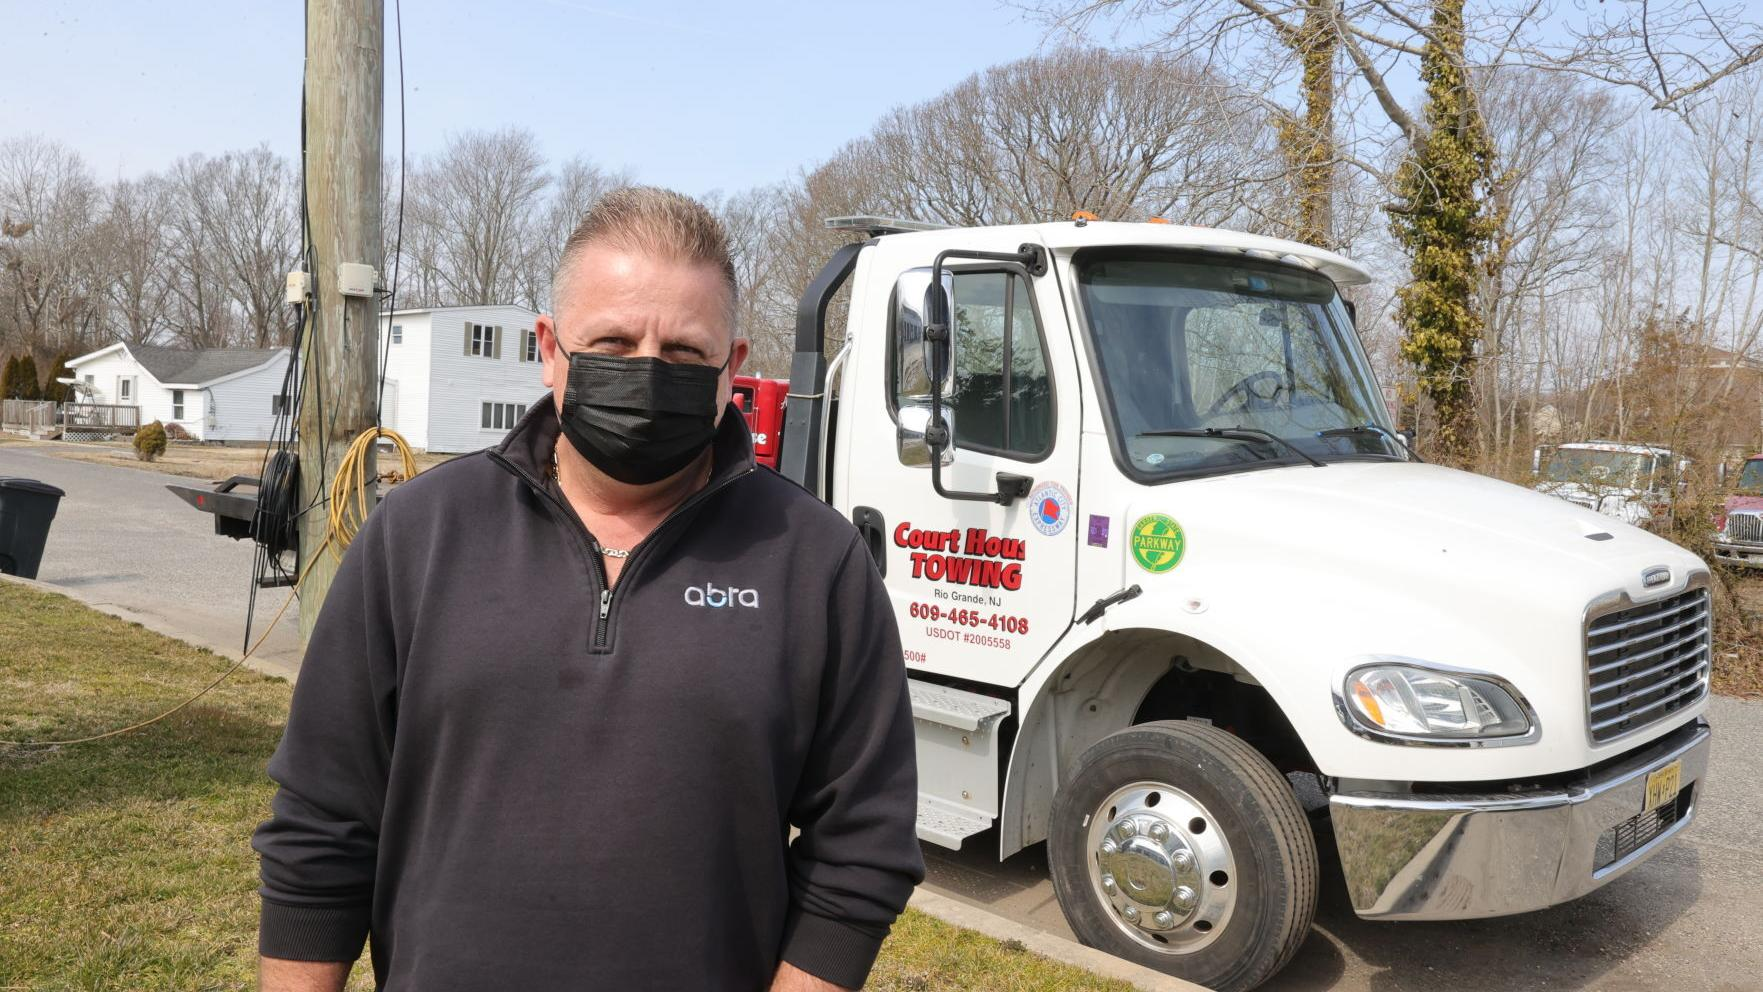 Cape May County towing operator still owed money by Egg Harbor Township